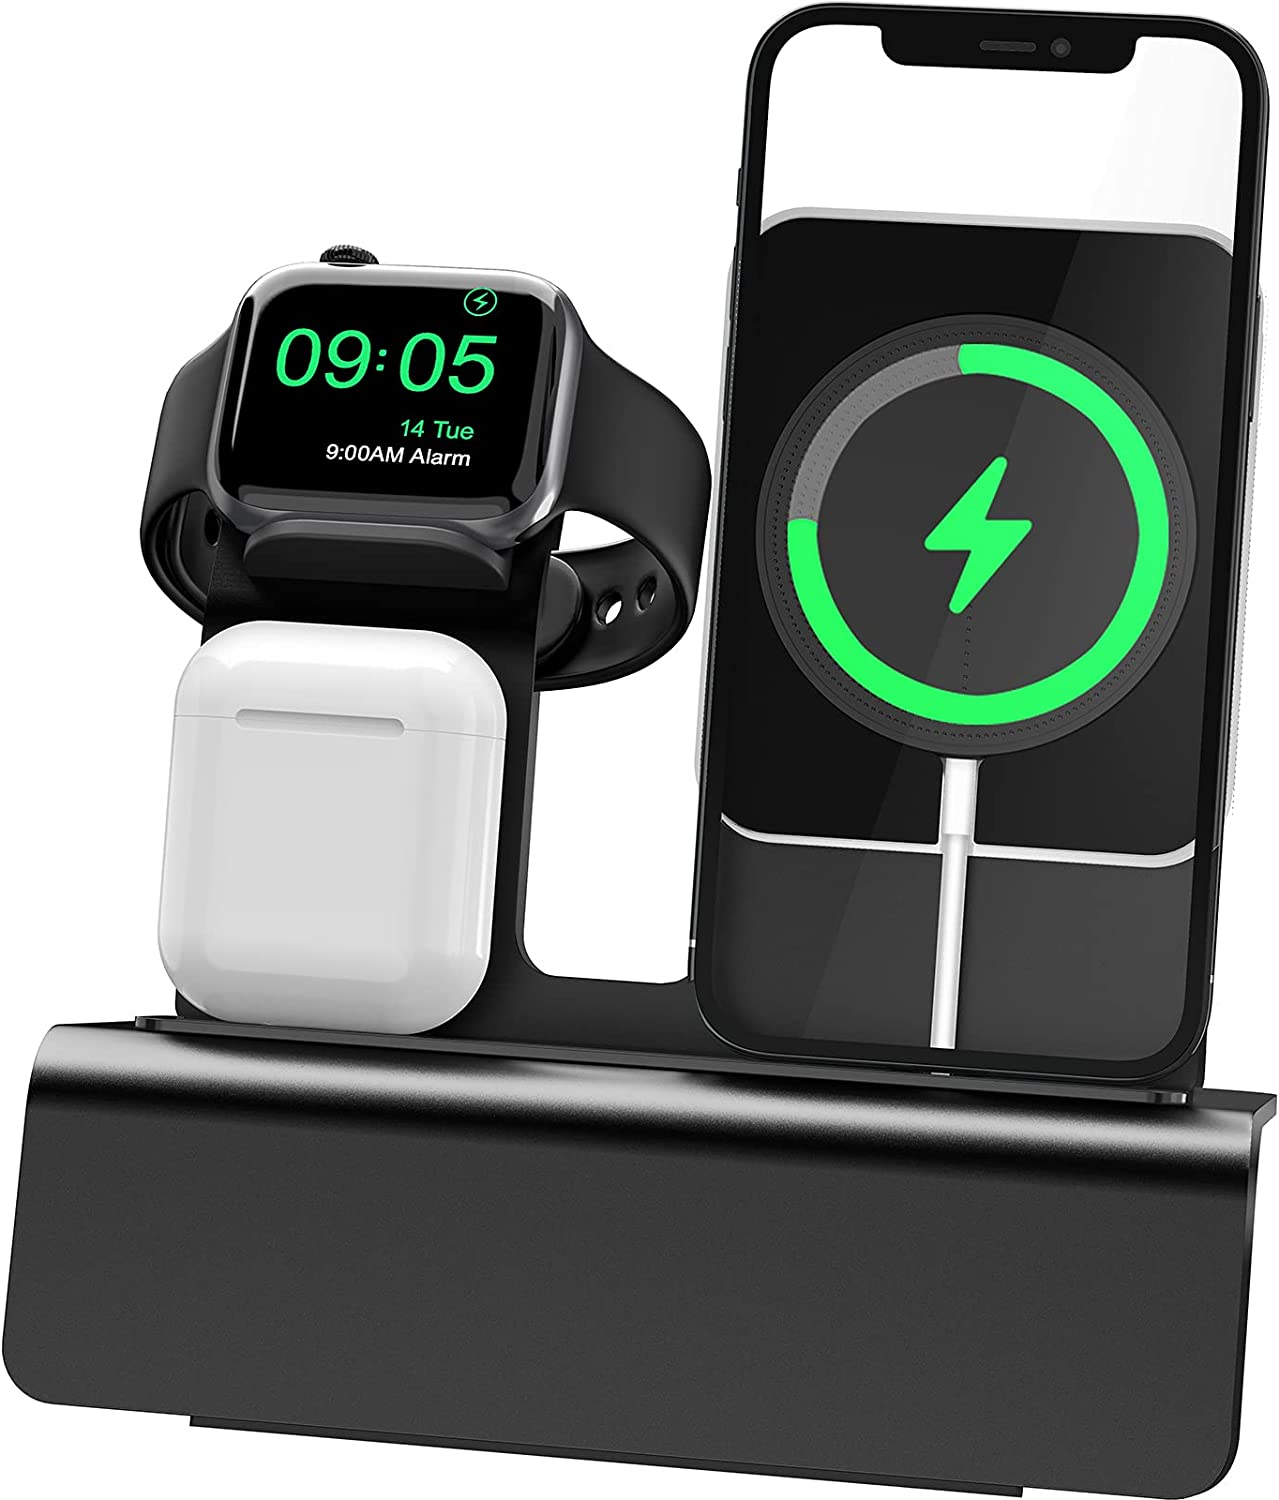 Yestan Wireless Charger Compatible with Magsafe Charger, iPhone 12 Pro Max 11 XS X XR 8 Plus, Apple Watch Series 6 5 4 3, Charging Station for Apple Products, (NO Magnet, NO PD Adapter) - Black